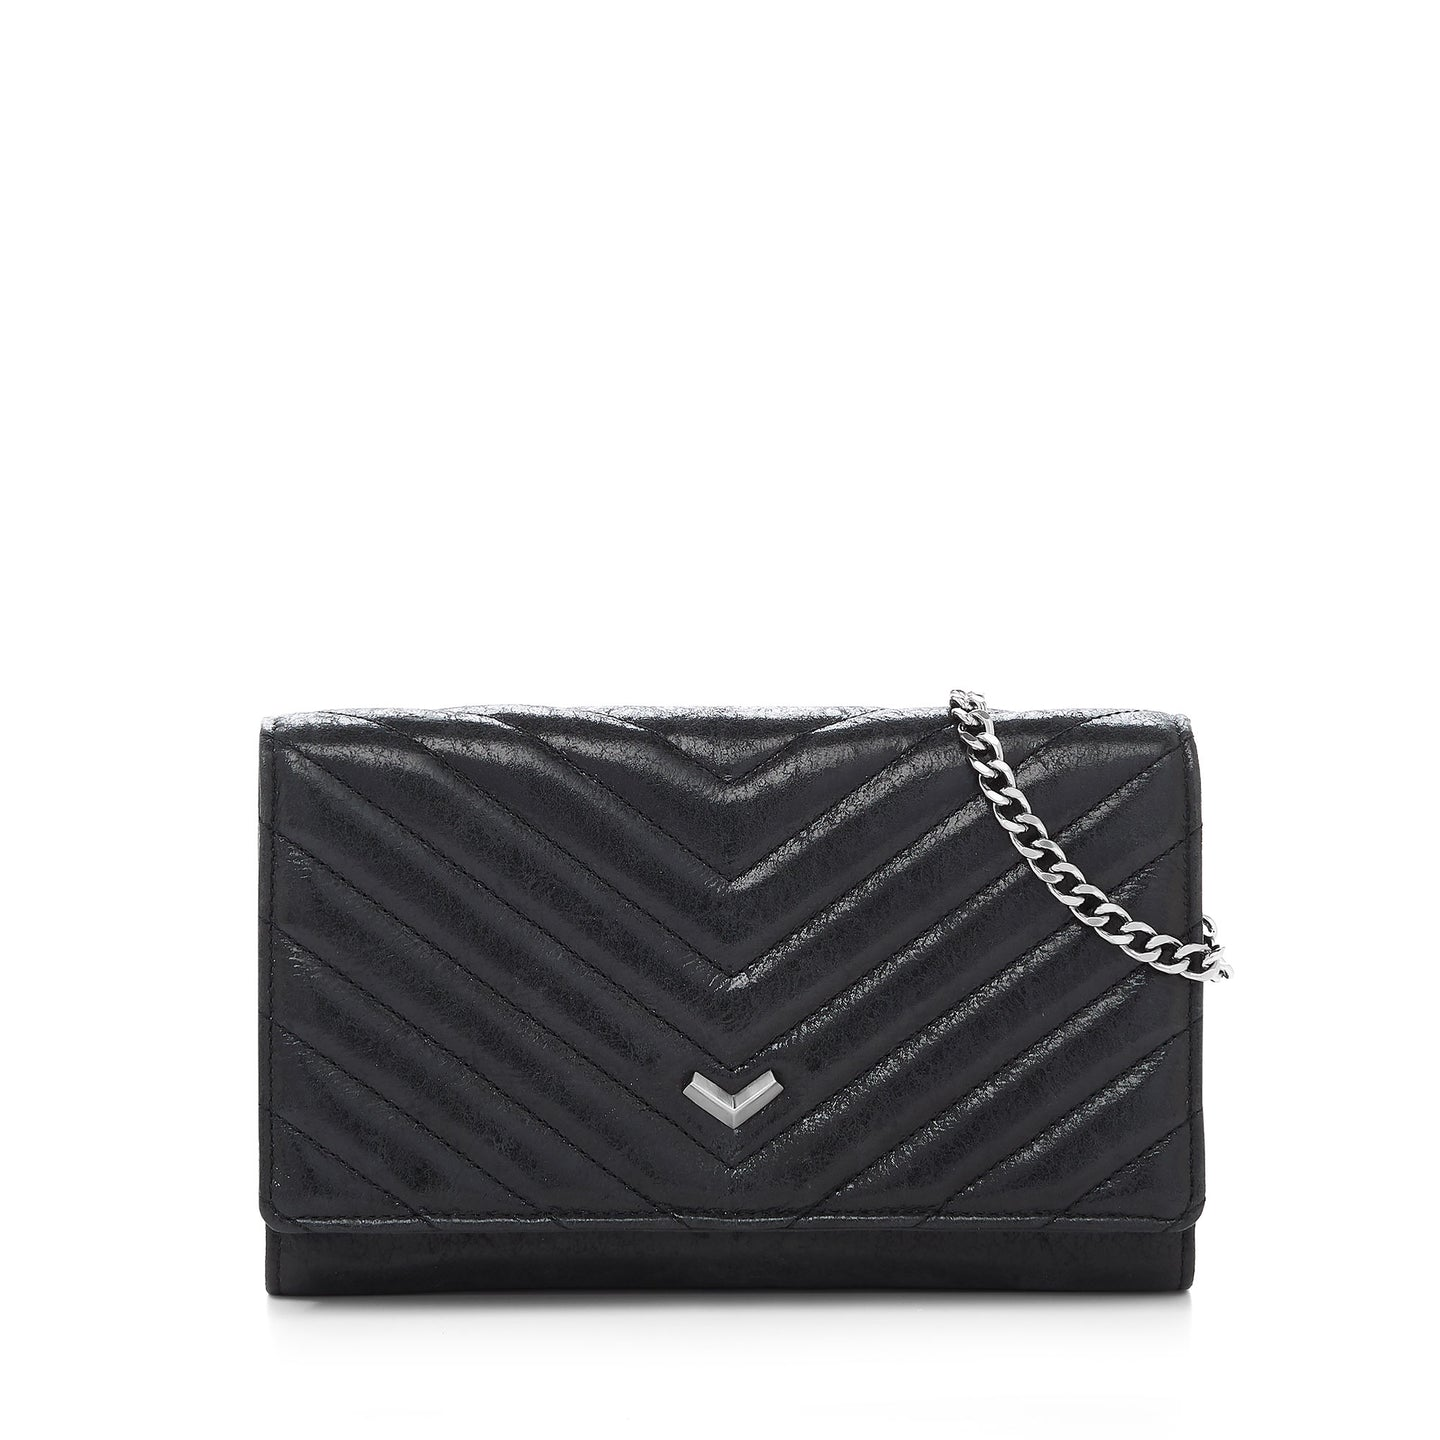 16H152Q-DLBLK botkier soho quilted chain wallet black A